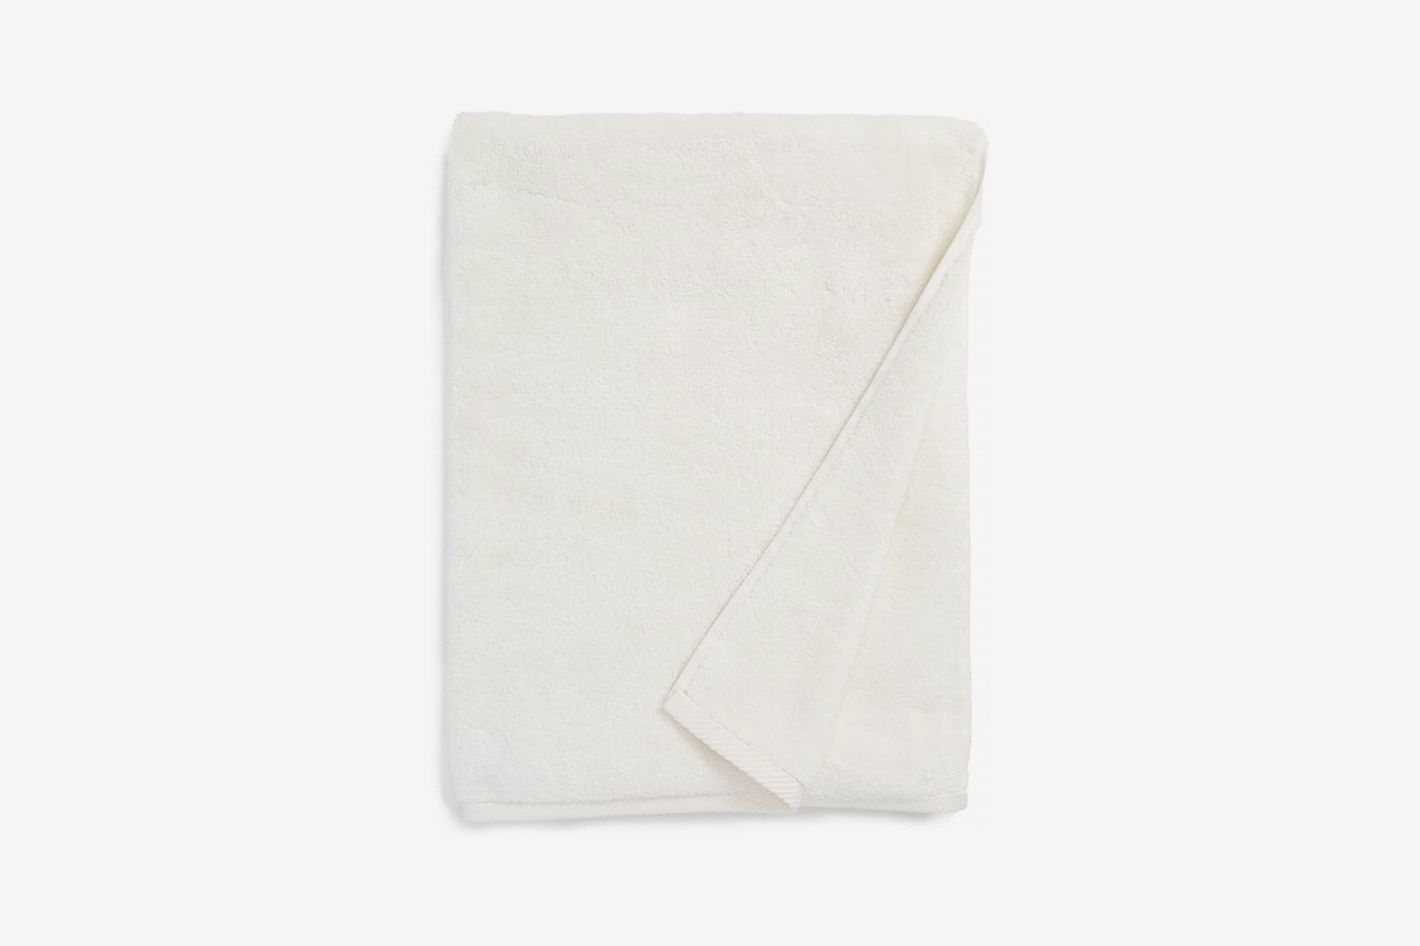 Kontext Japanese Lattice Towels Are The Most Absorbent Towel